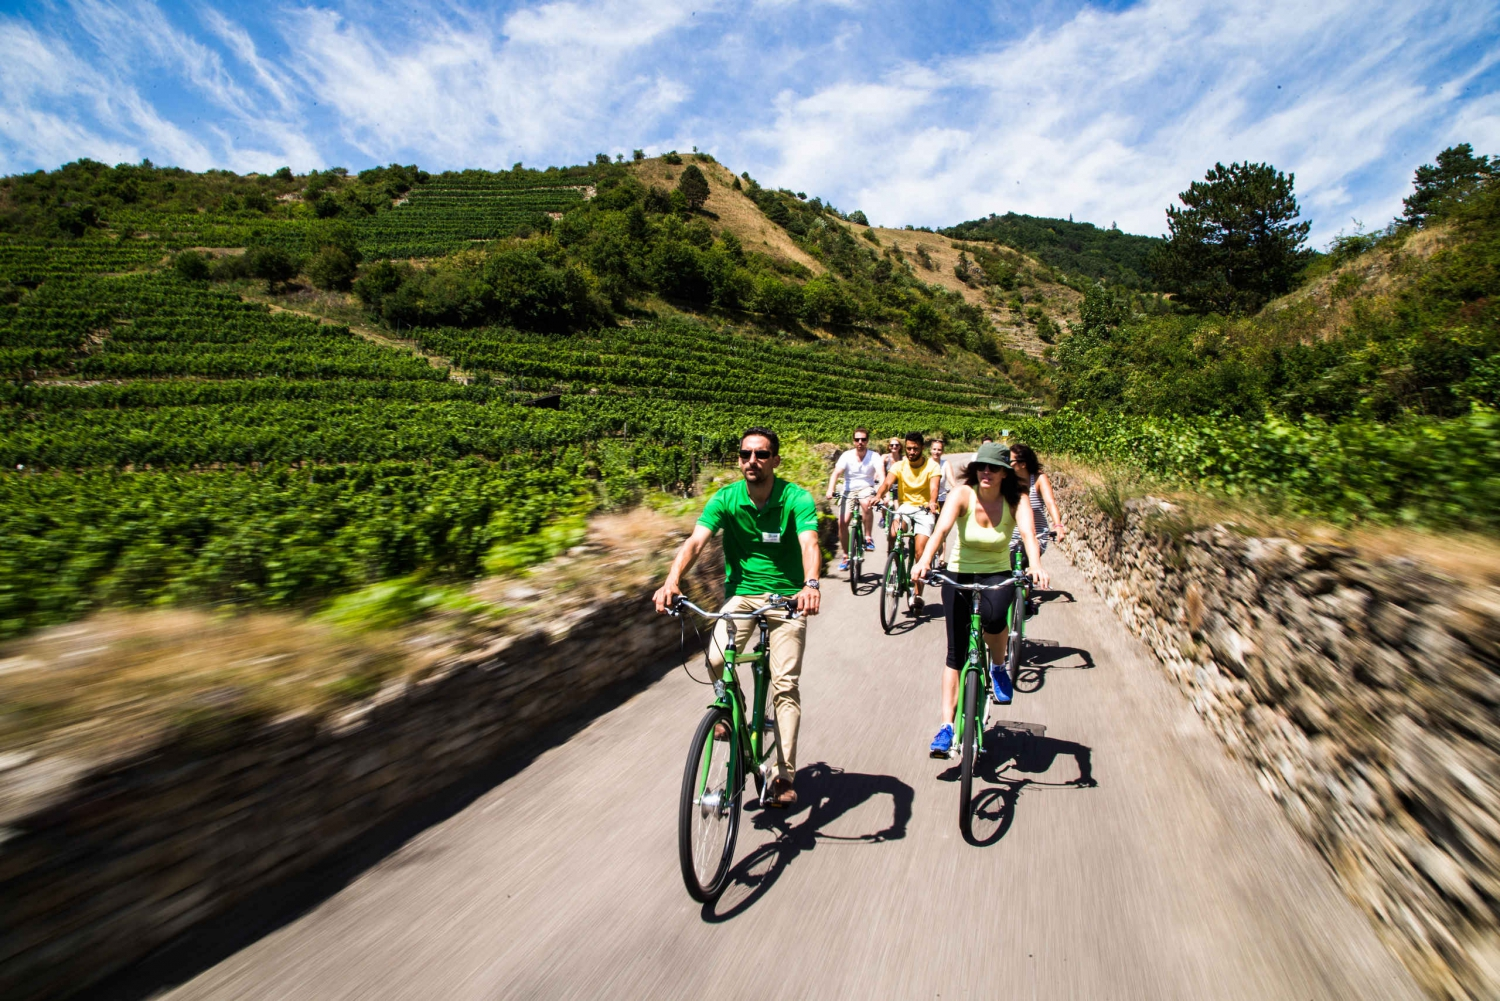 Grape Grazing: Wachau Valley Winery Biking Tour